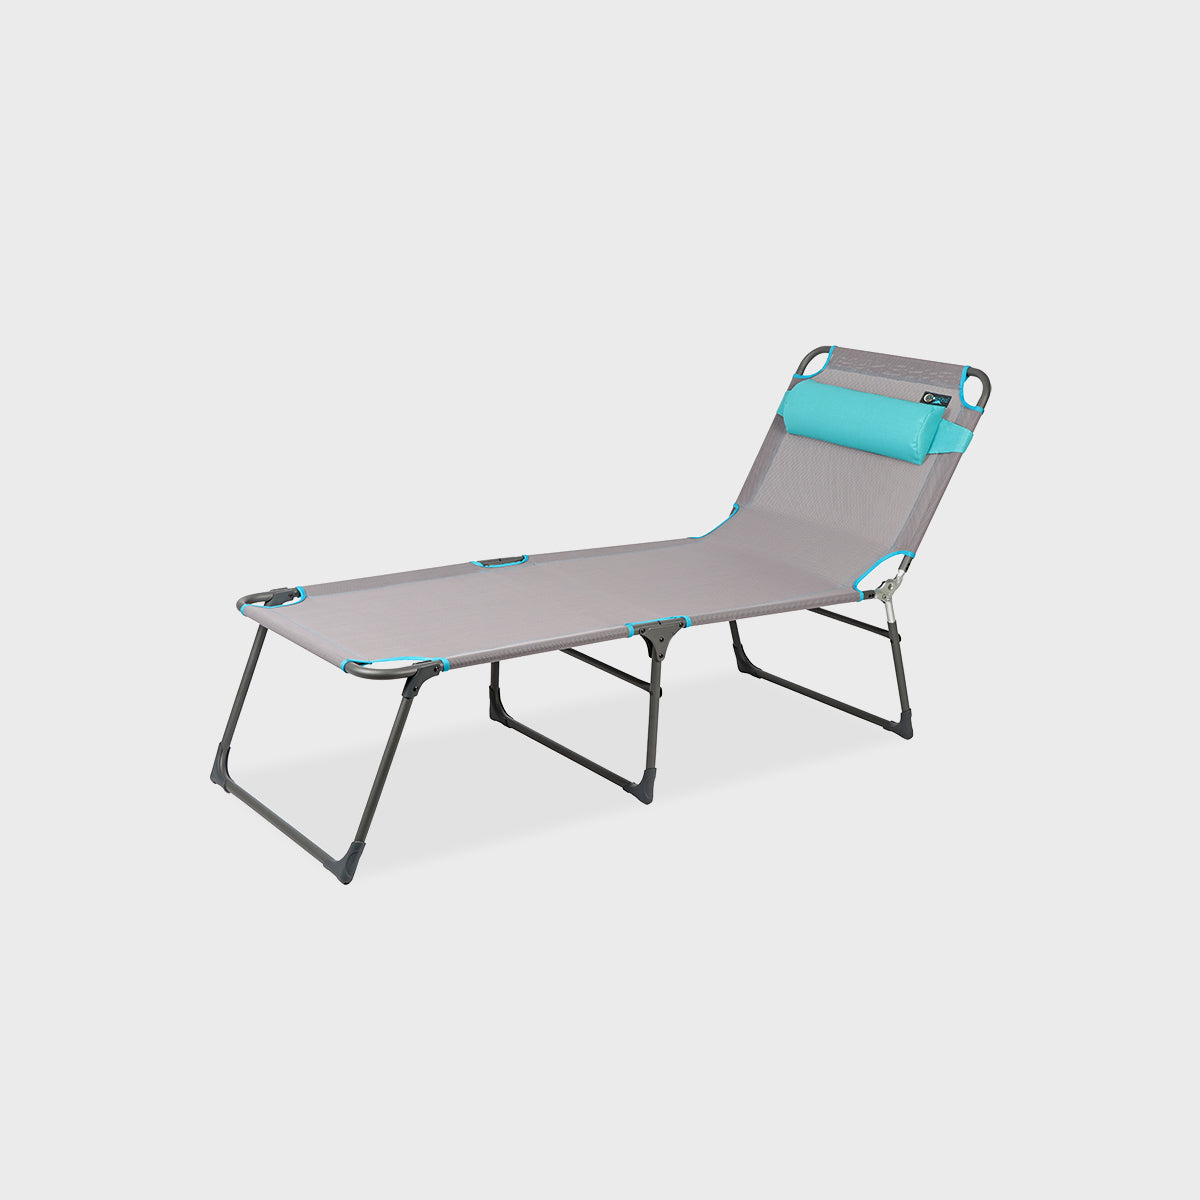 Ava Camping Lounger